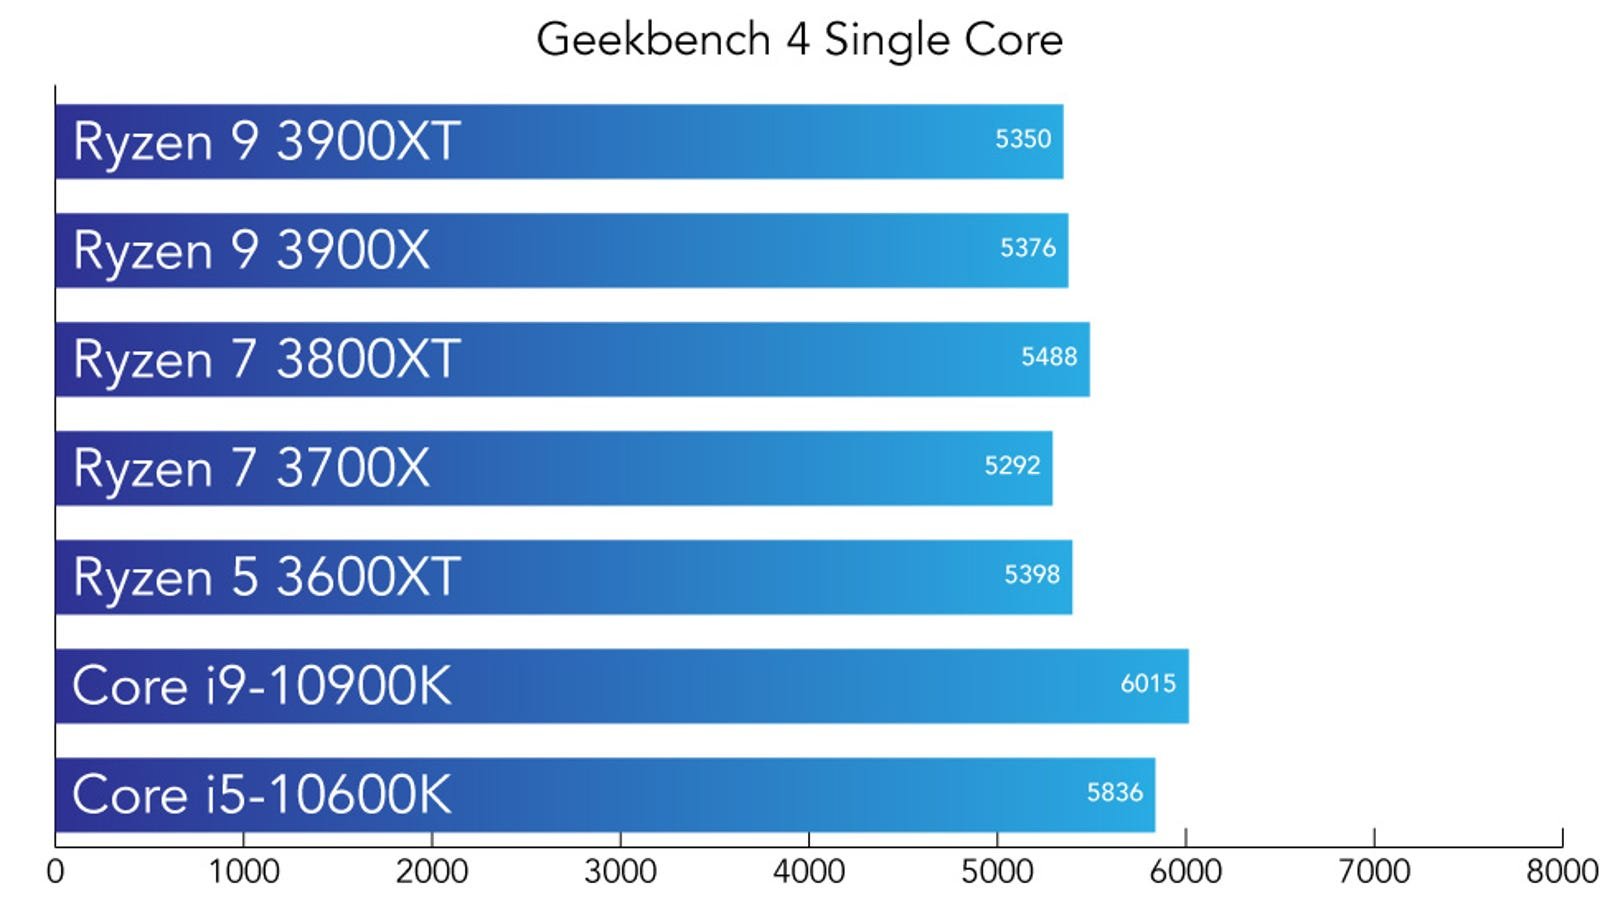 Single core performance. Higher is better.